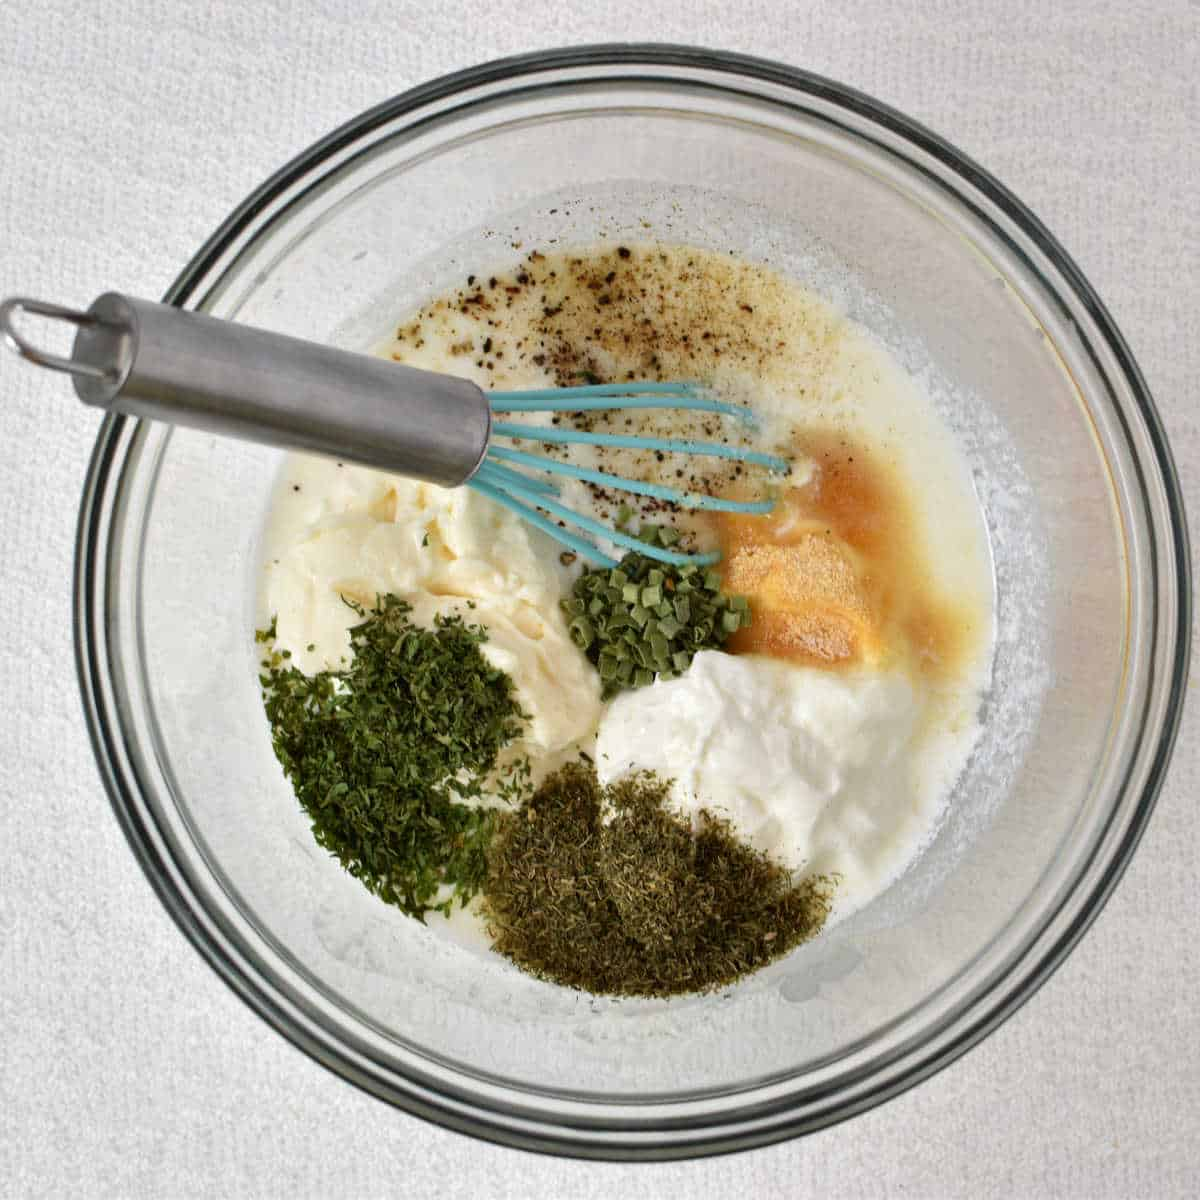 ingredients for homemade buttermilk ranch in a bowl